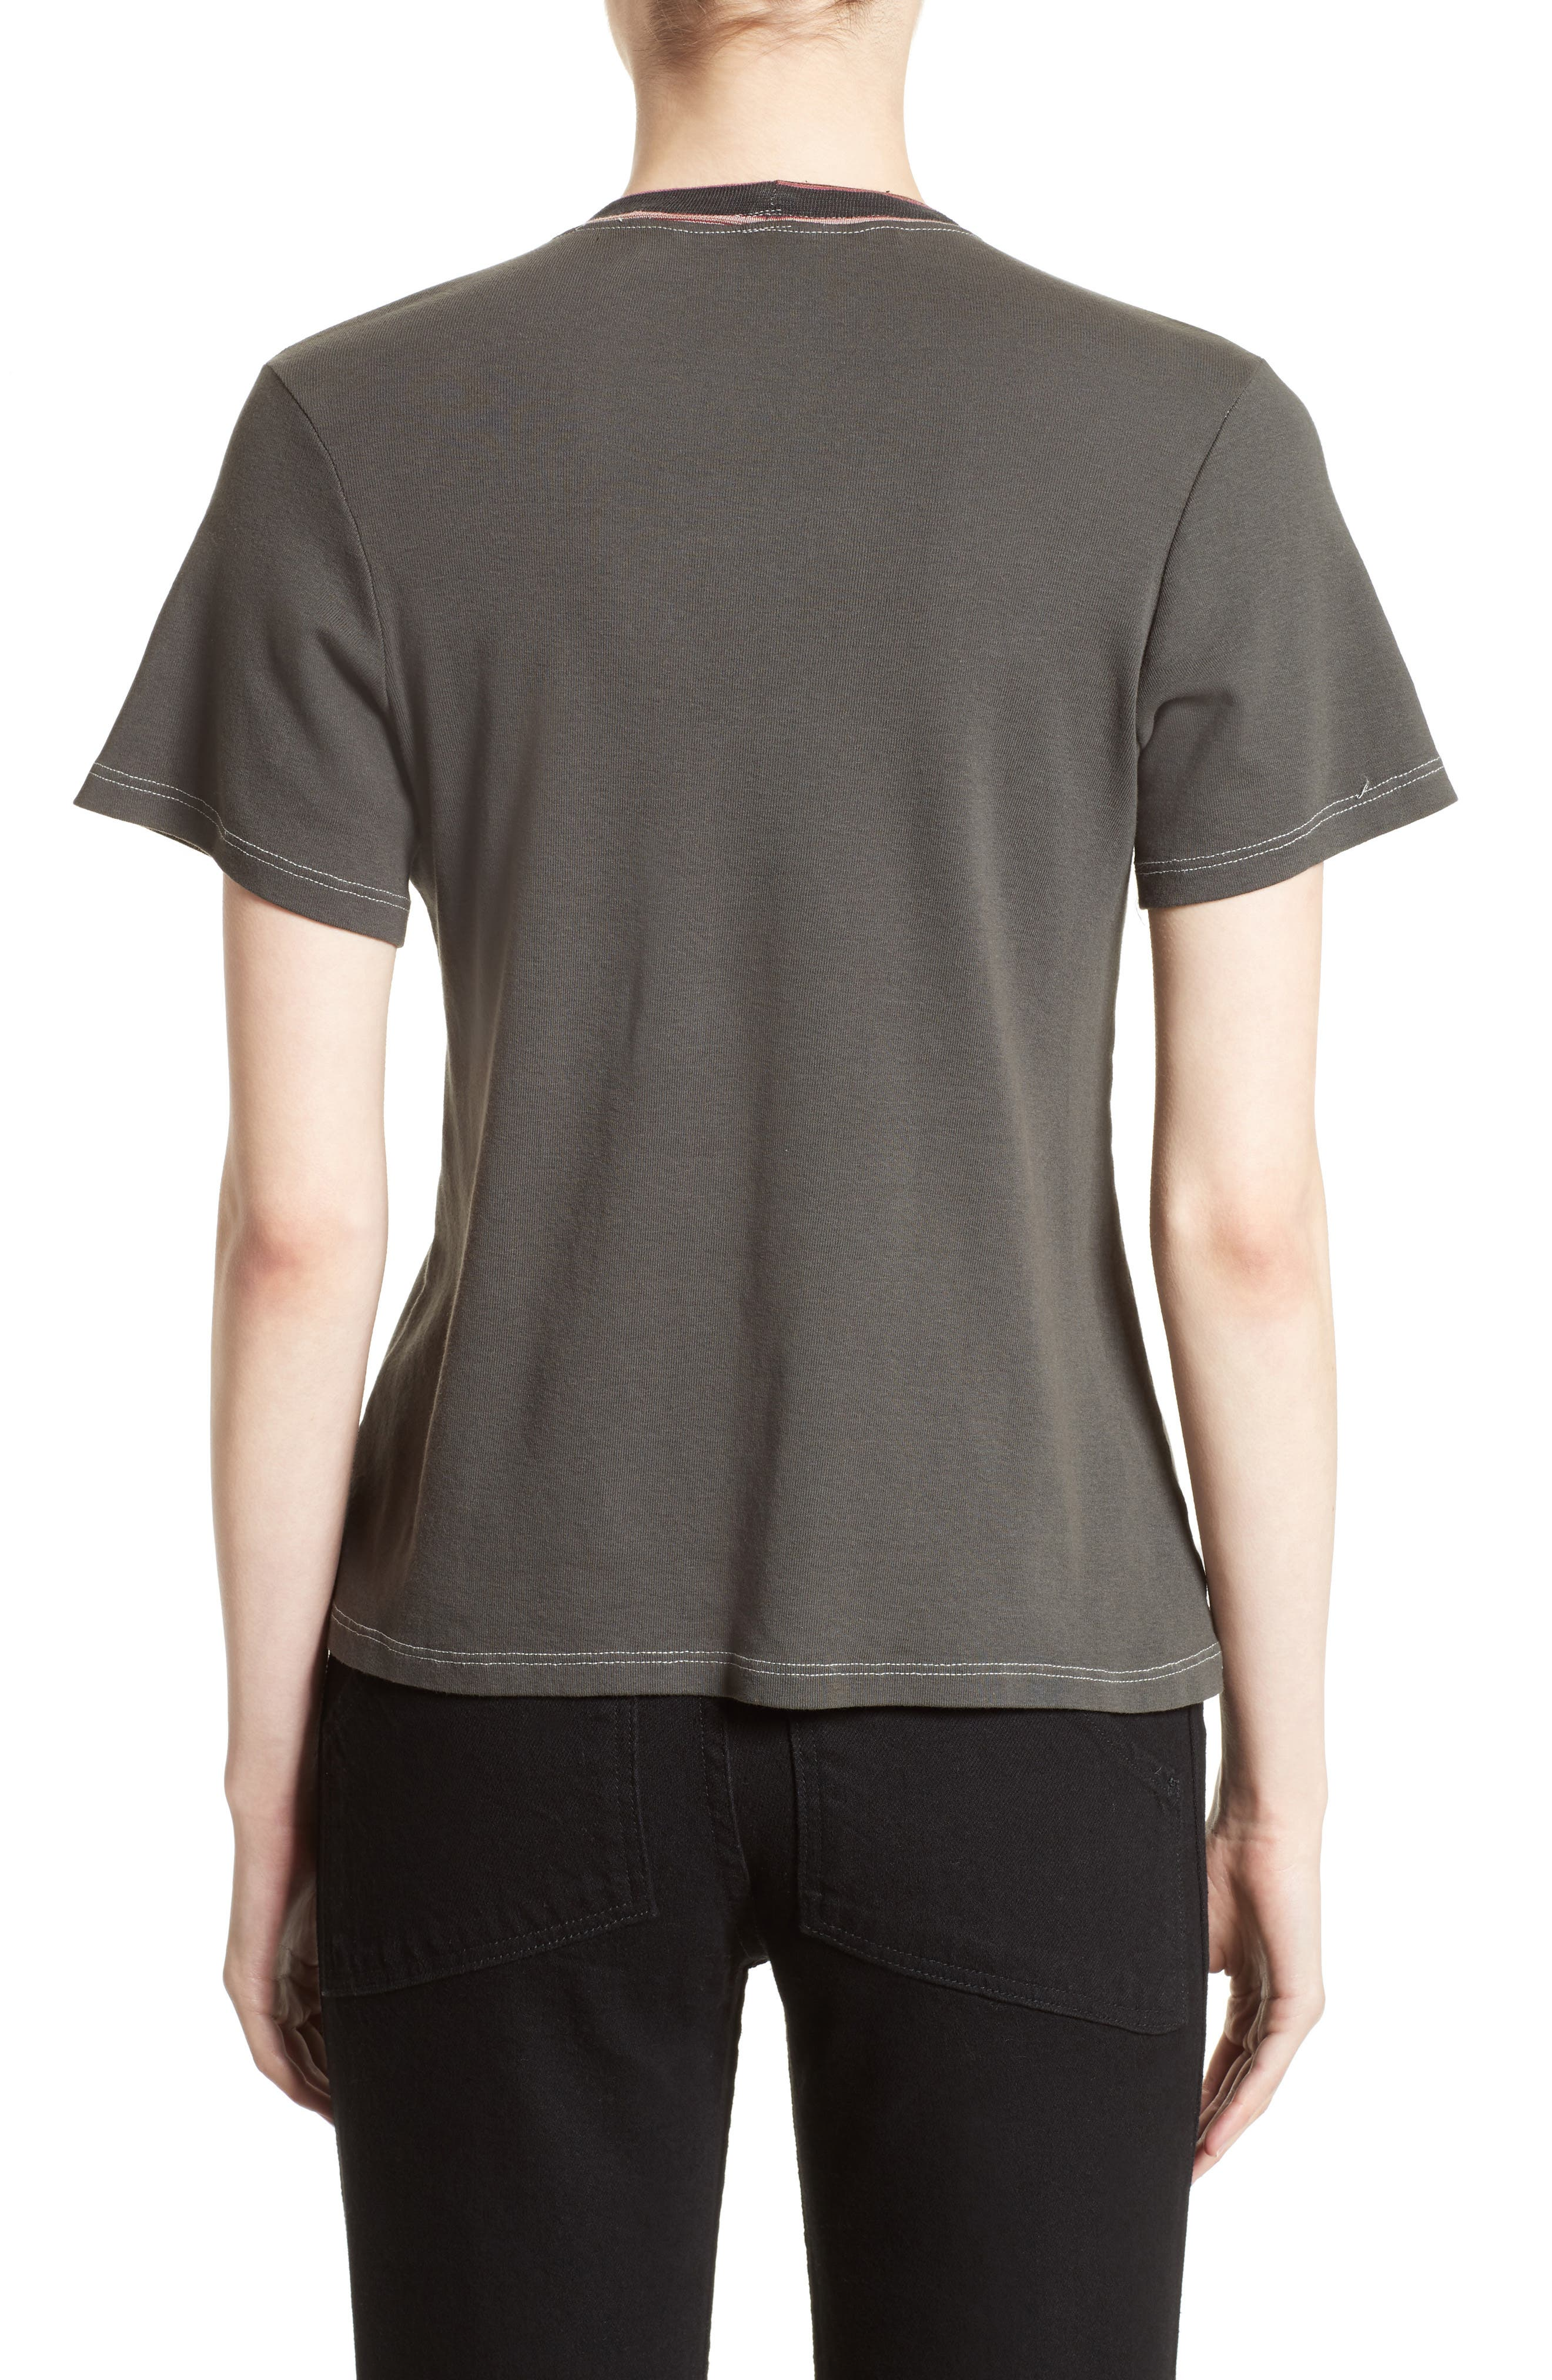 Top Stitch Tee,                             Alternate thumbnail 2, color,                             Off Black